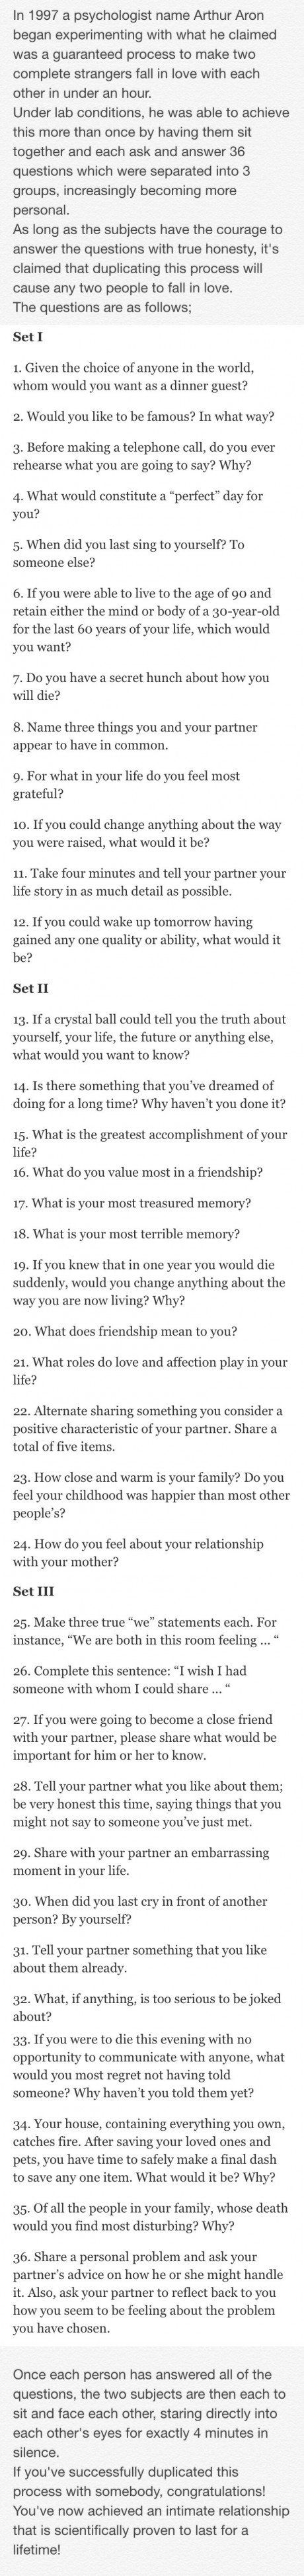 Funny questions to ask someone youre dating